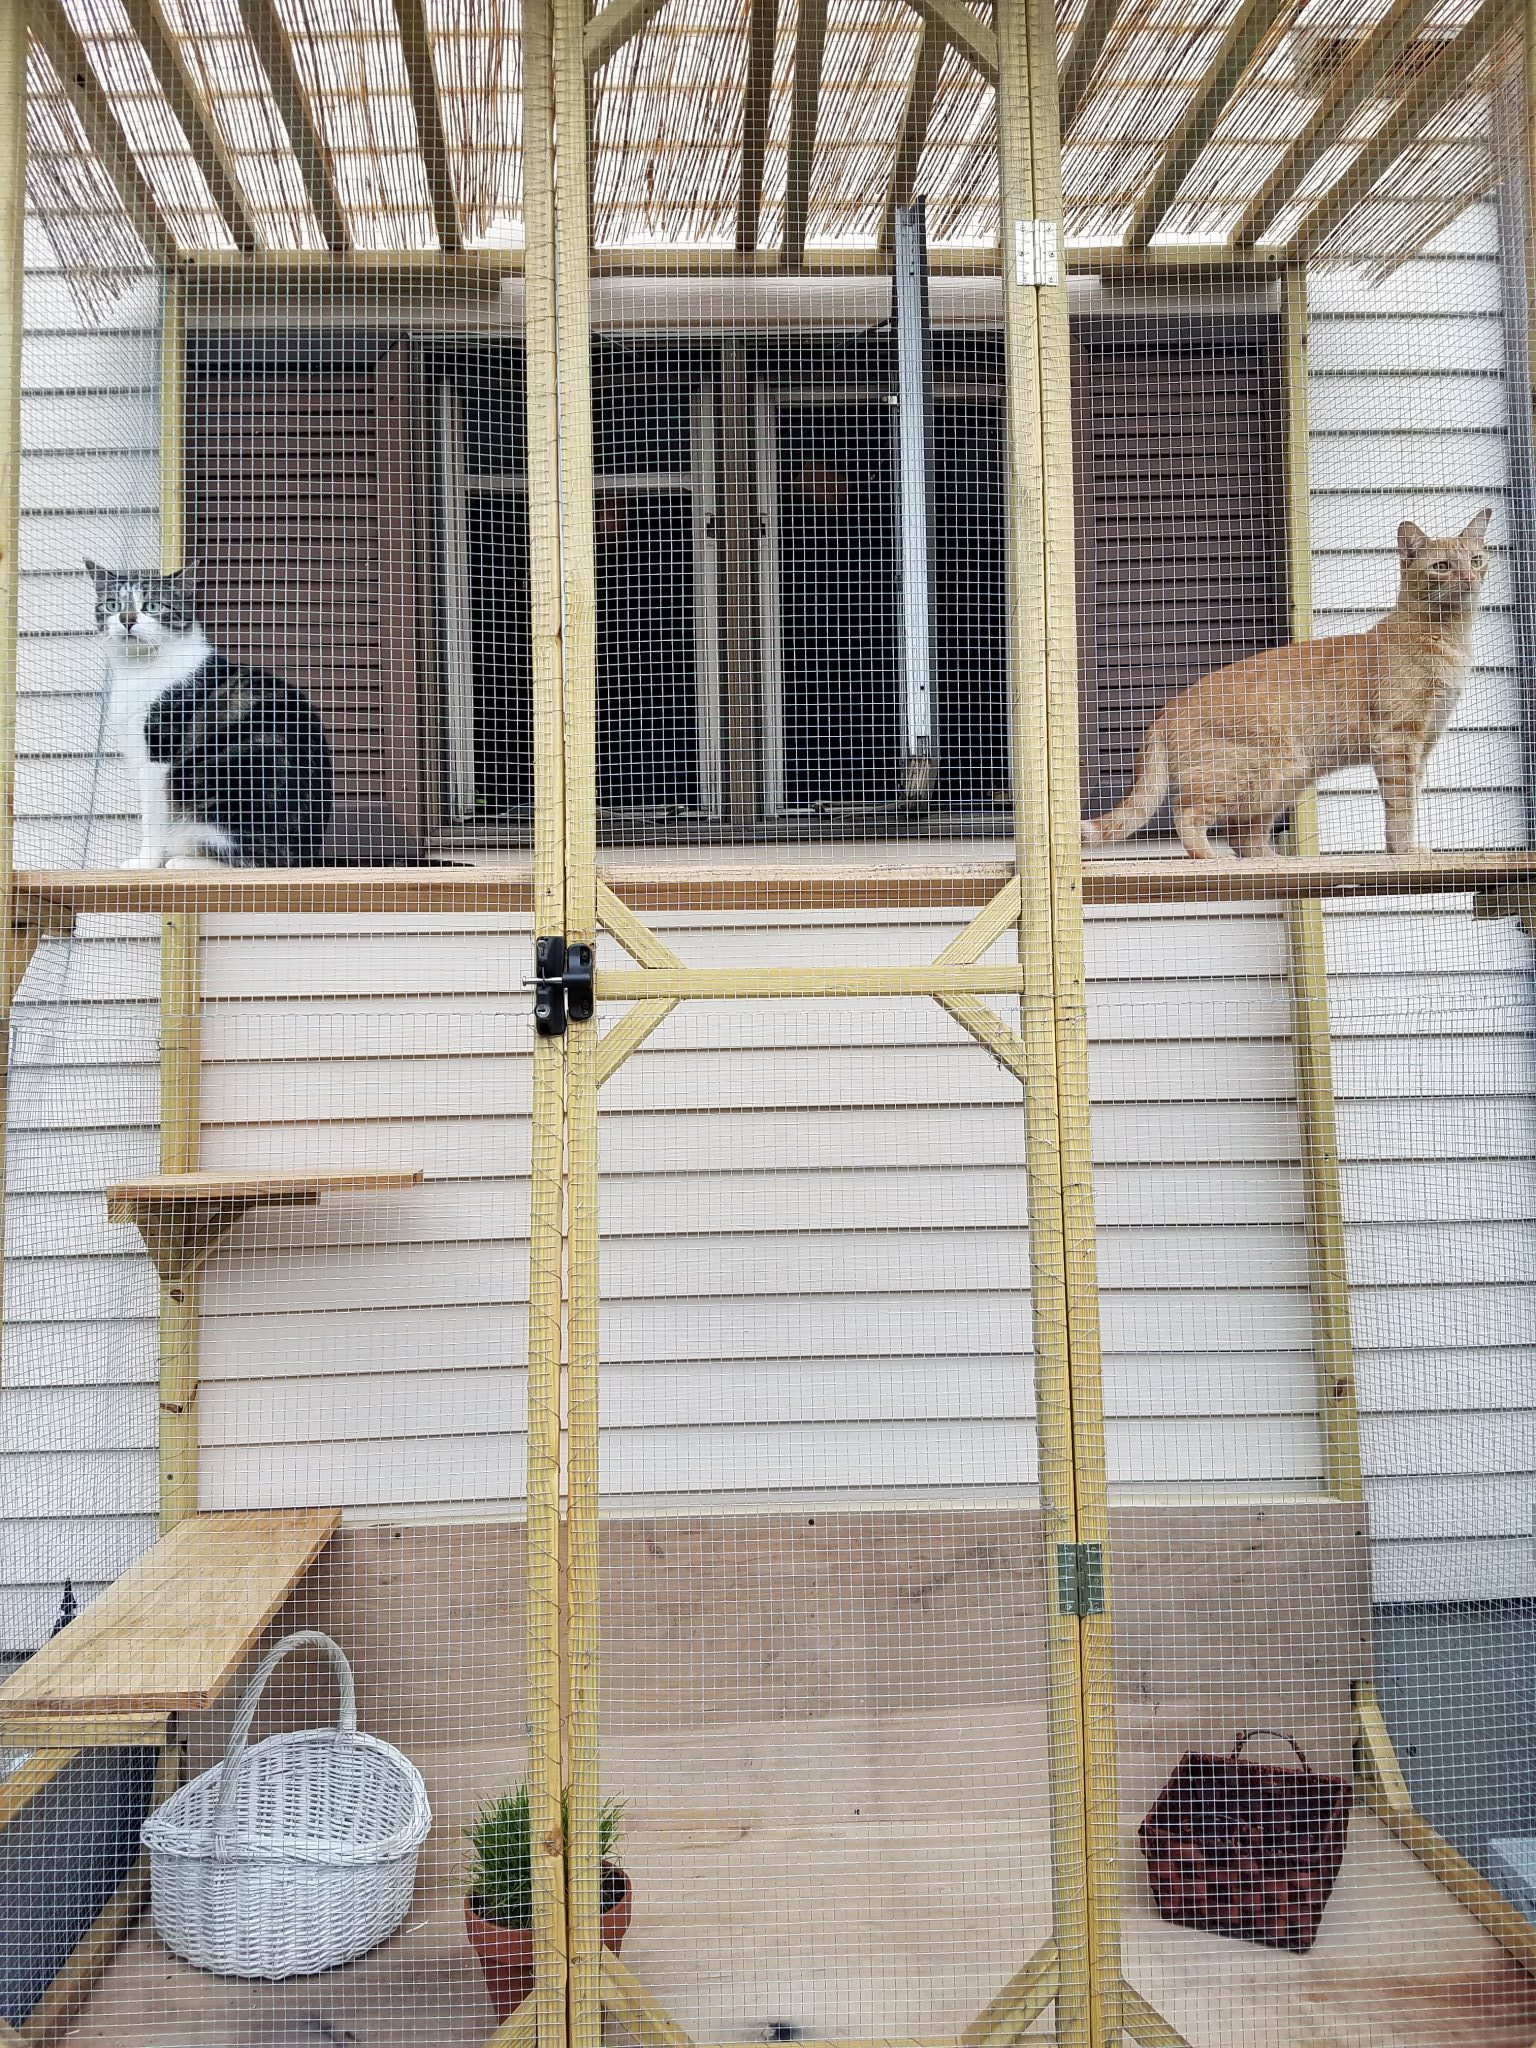 One of these is an adventure cat, can you tell? But they both love the catio equally! (Photo: Jordan Hardiman)